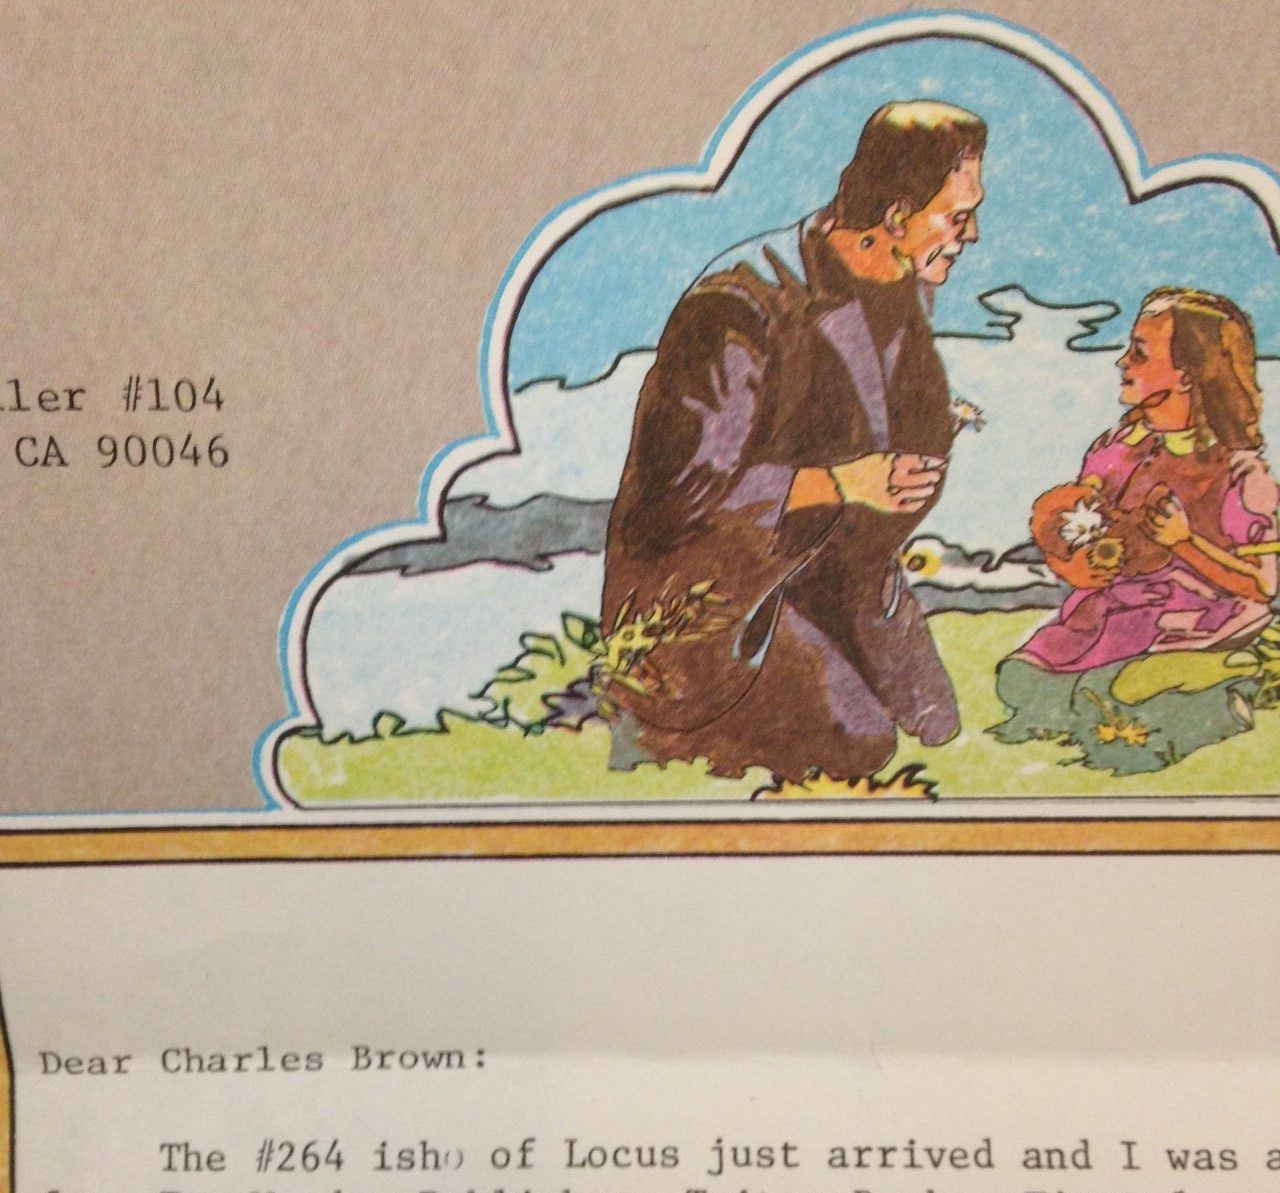 Color illustration of Frankenstein showing a flower to a little girl on stationary.